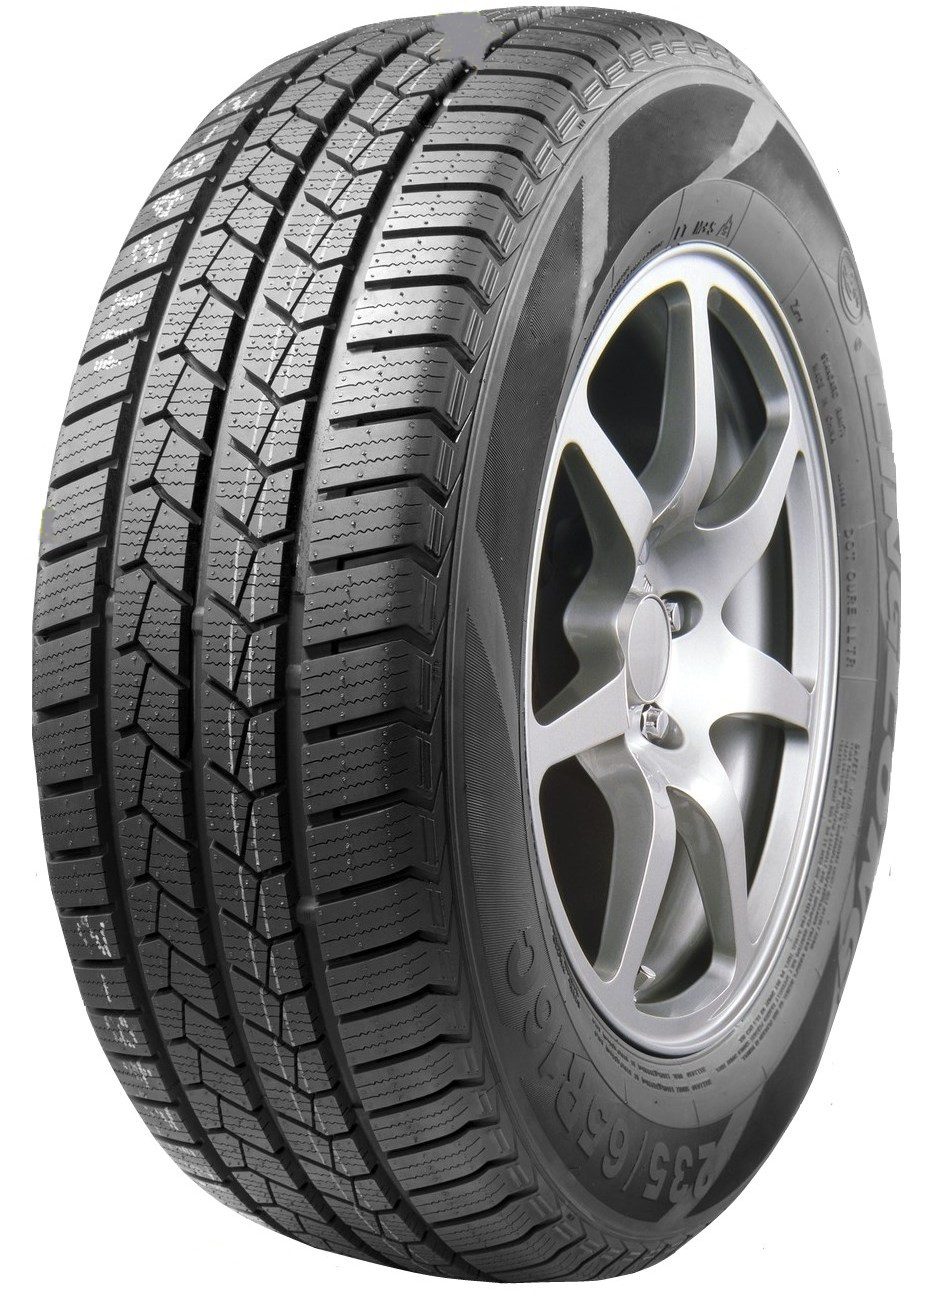 Llantas 185/75 R16  GREEN-MAX VAN LINGLONG Origen china